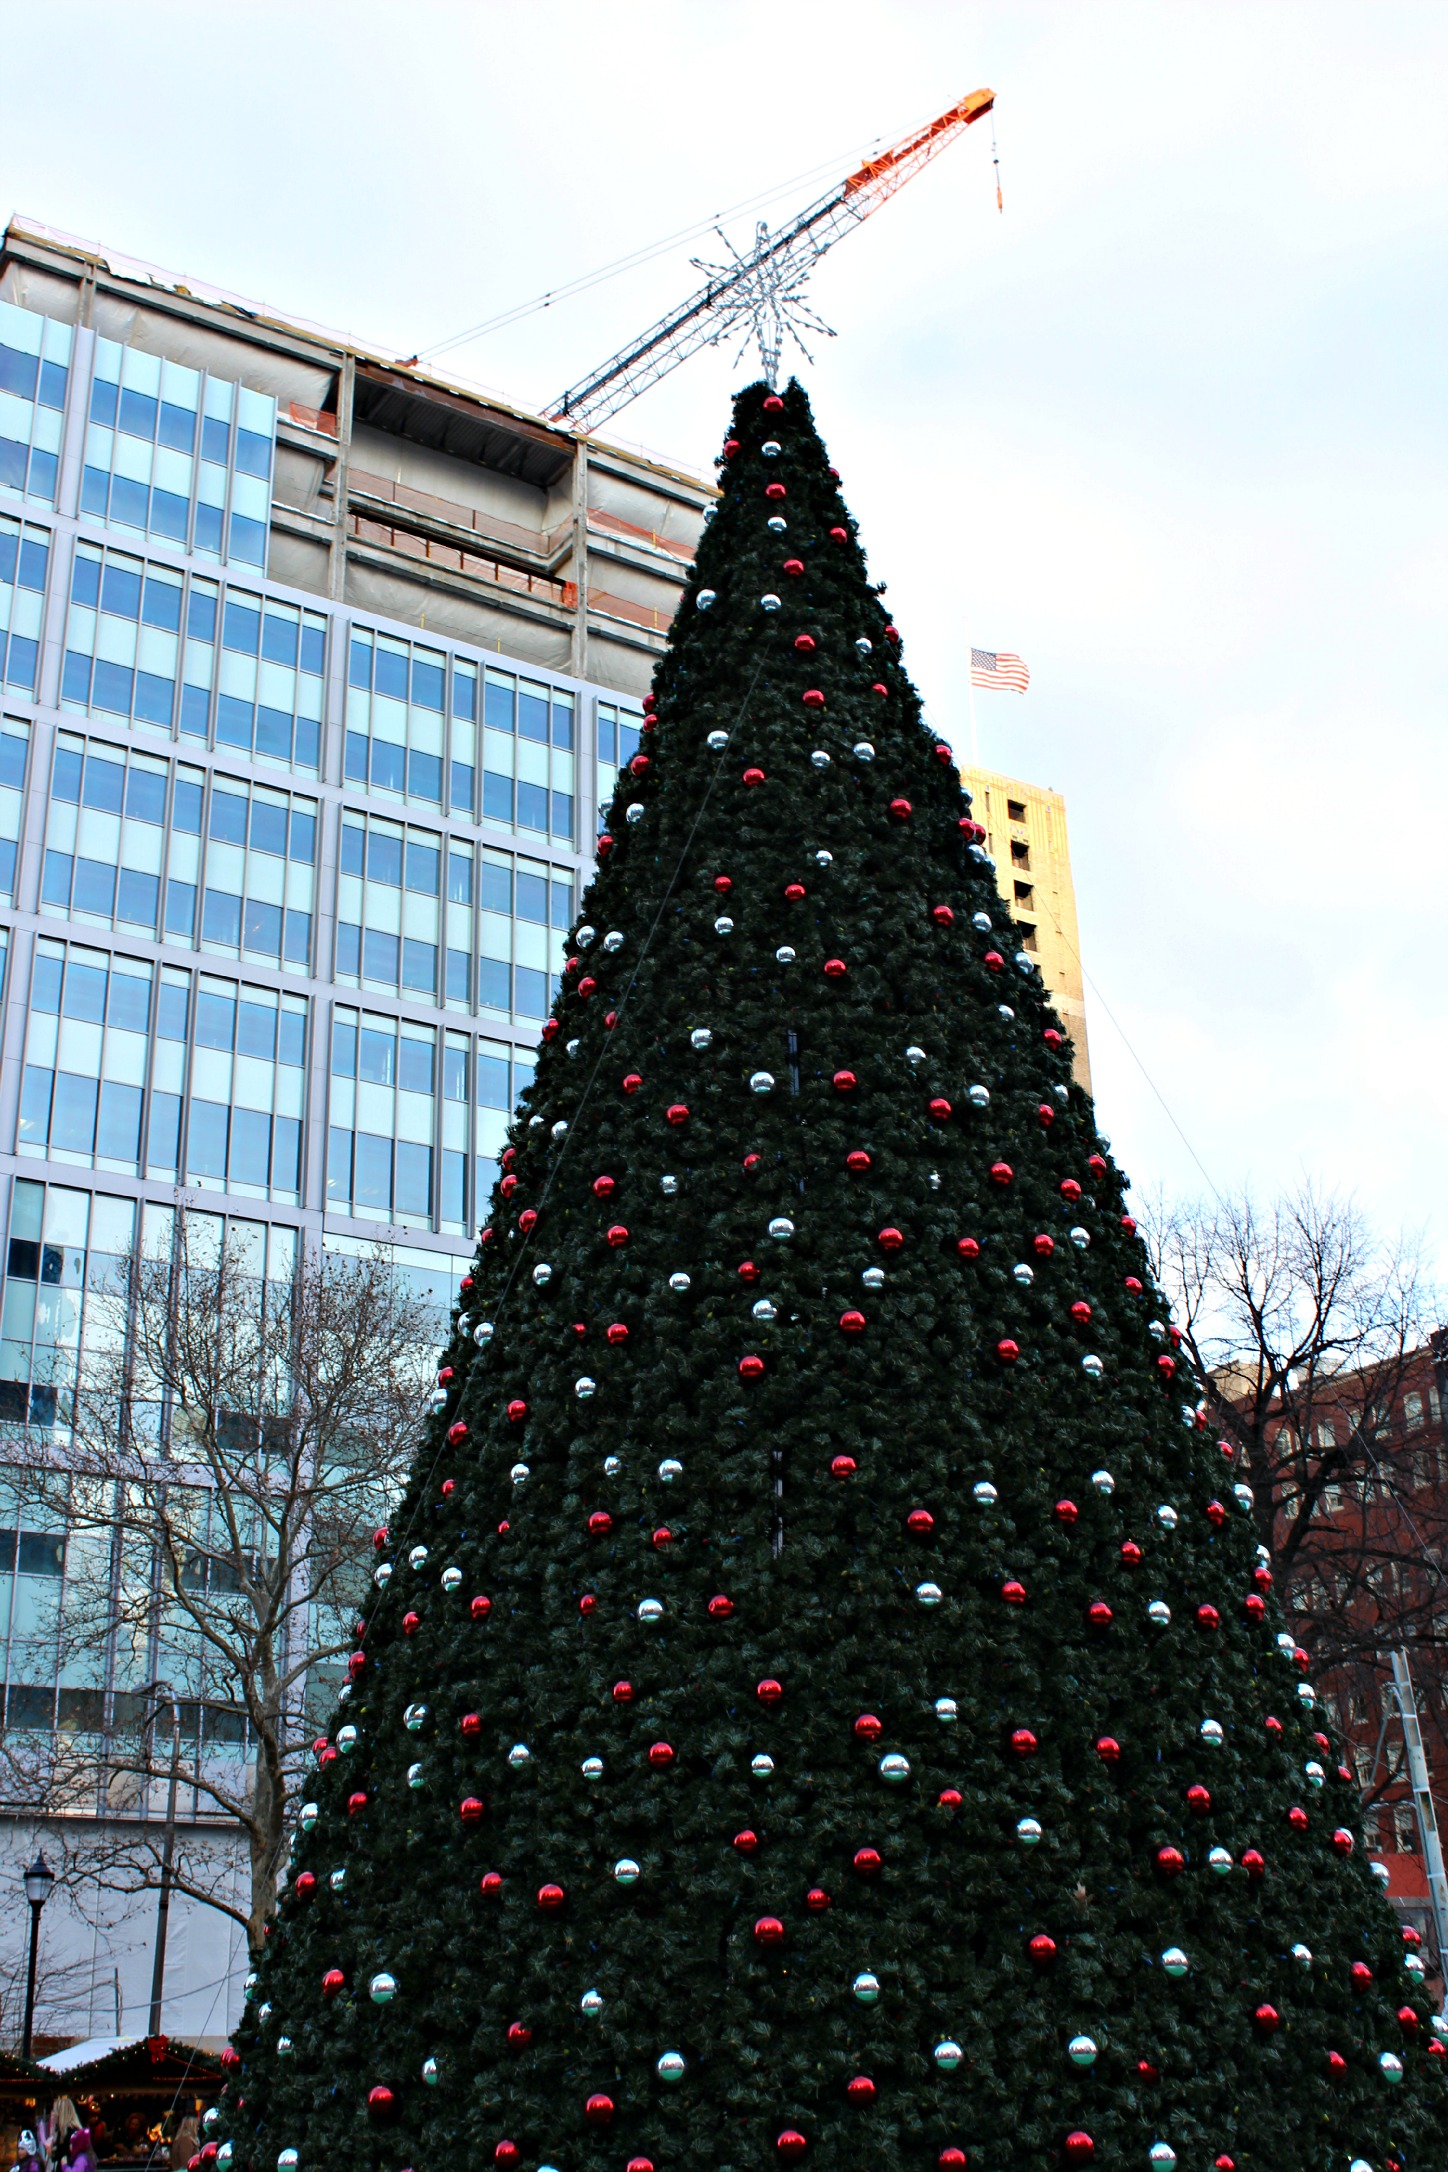 Christmastime in Philly